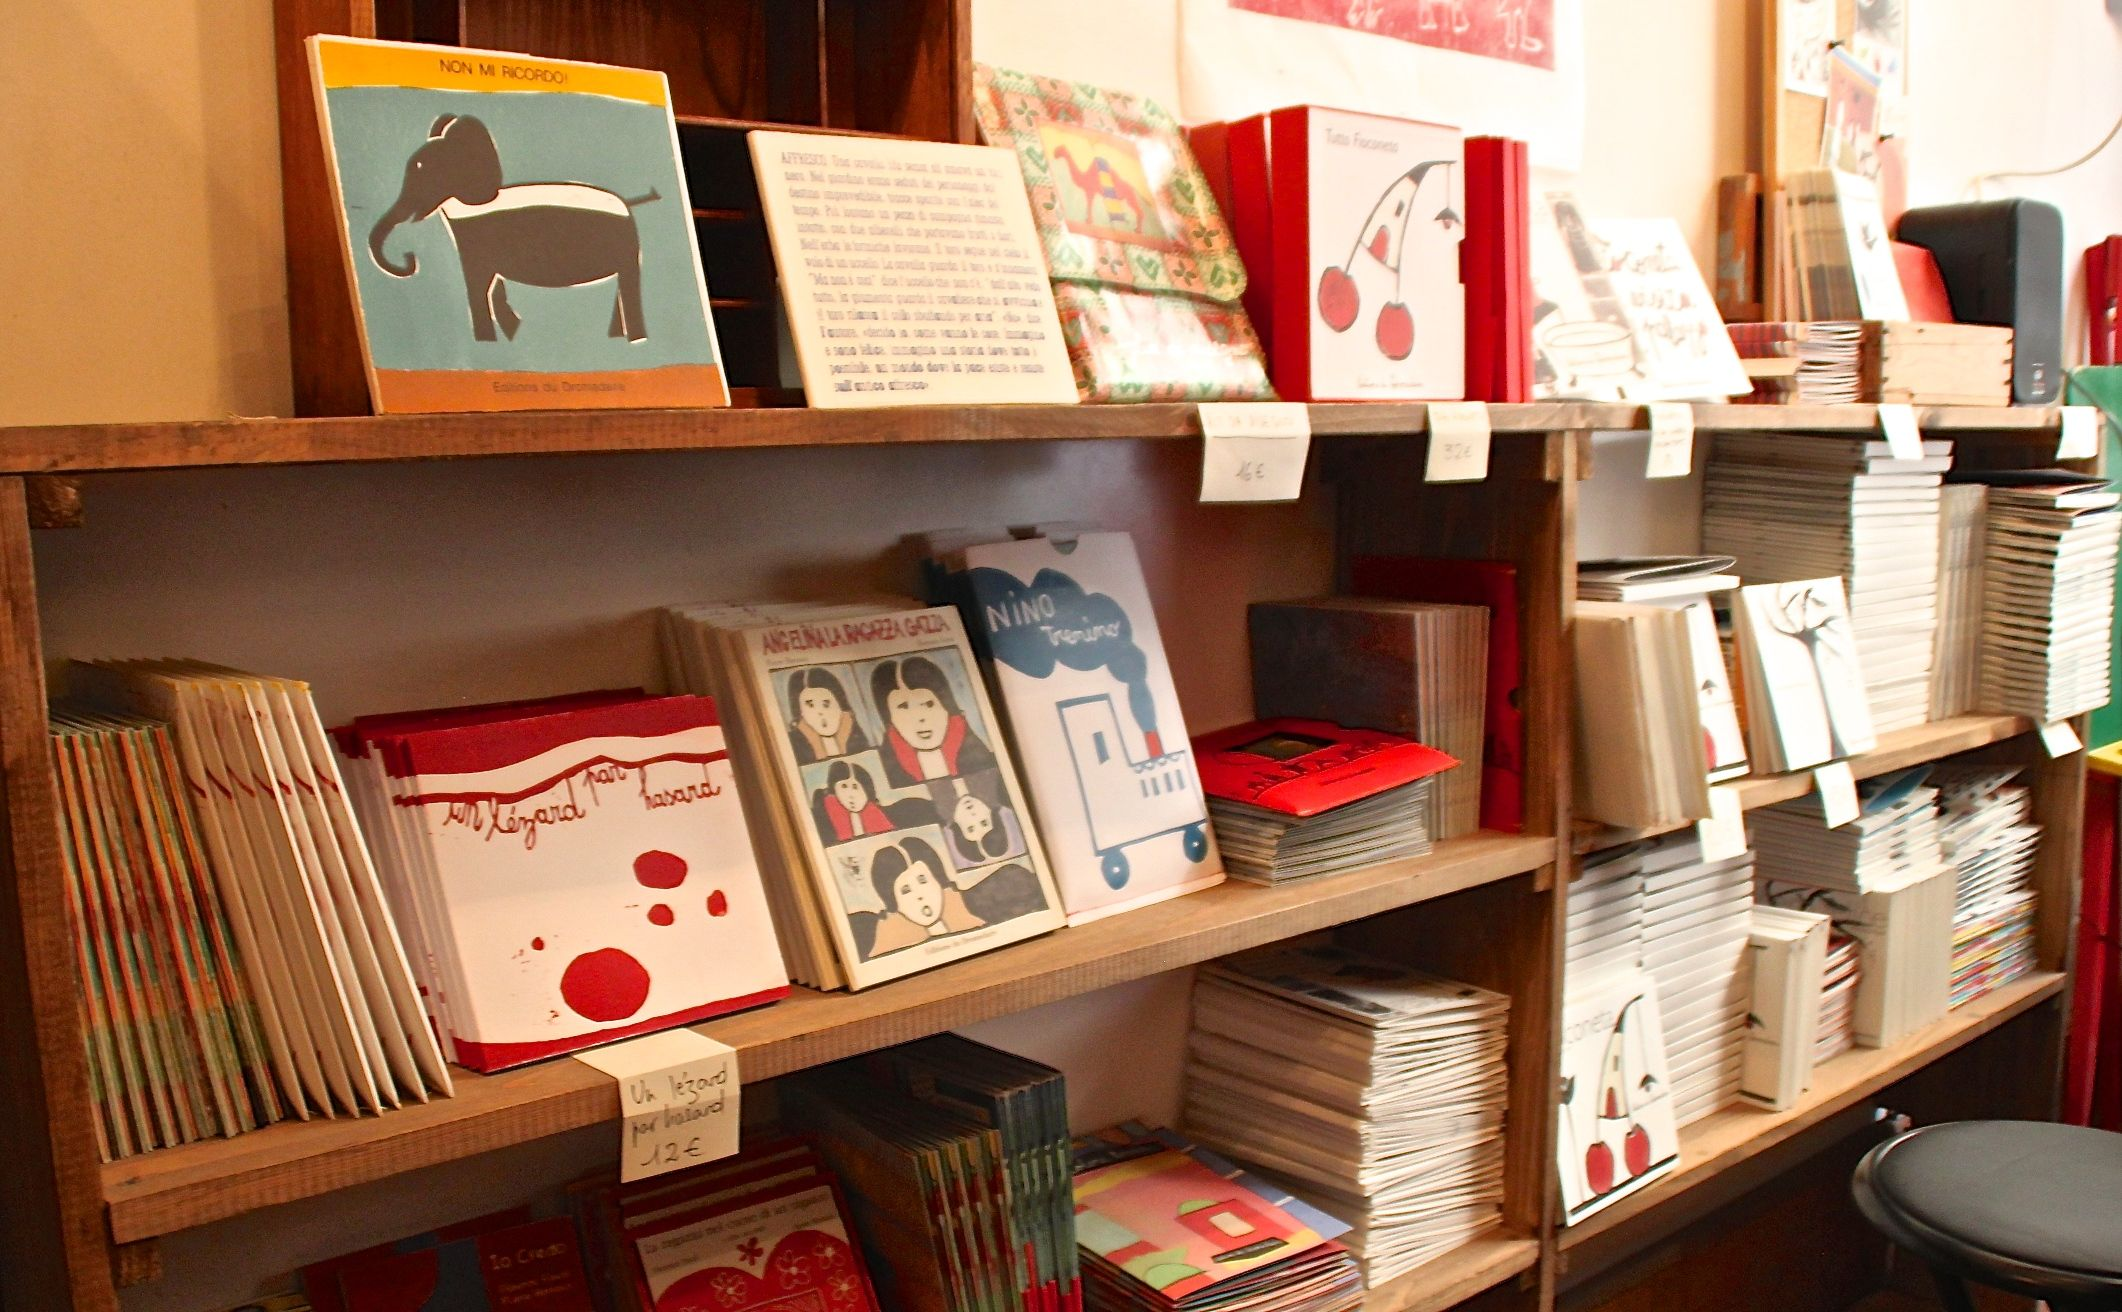 D_D_Italia - Things to do in Venice with children - Dromadaire bookshop